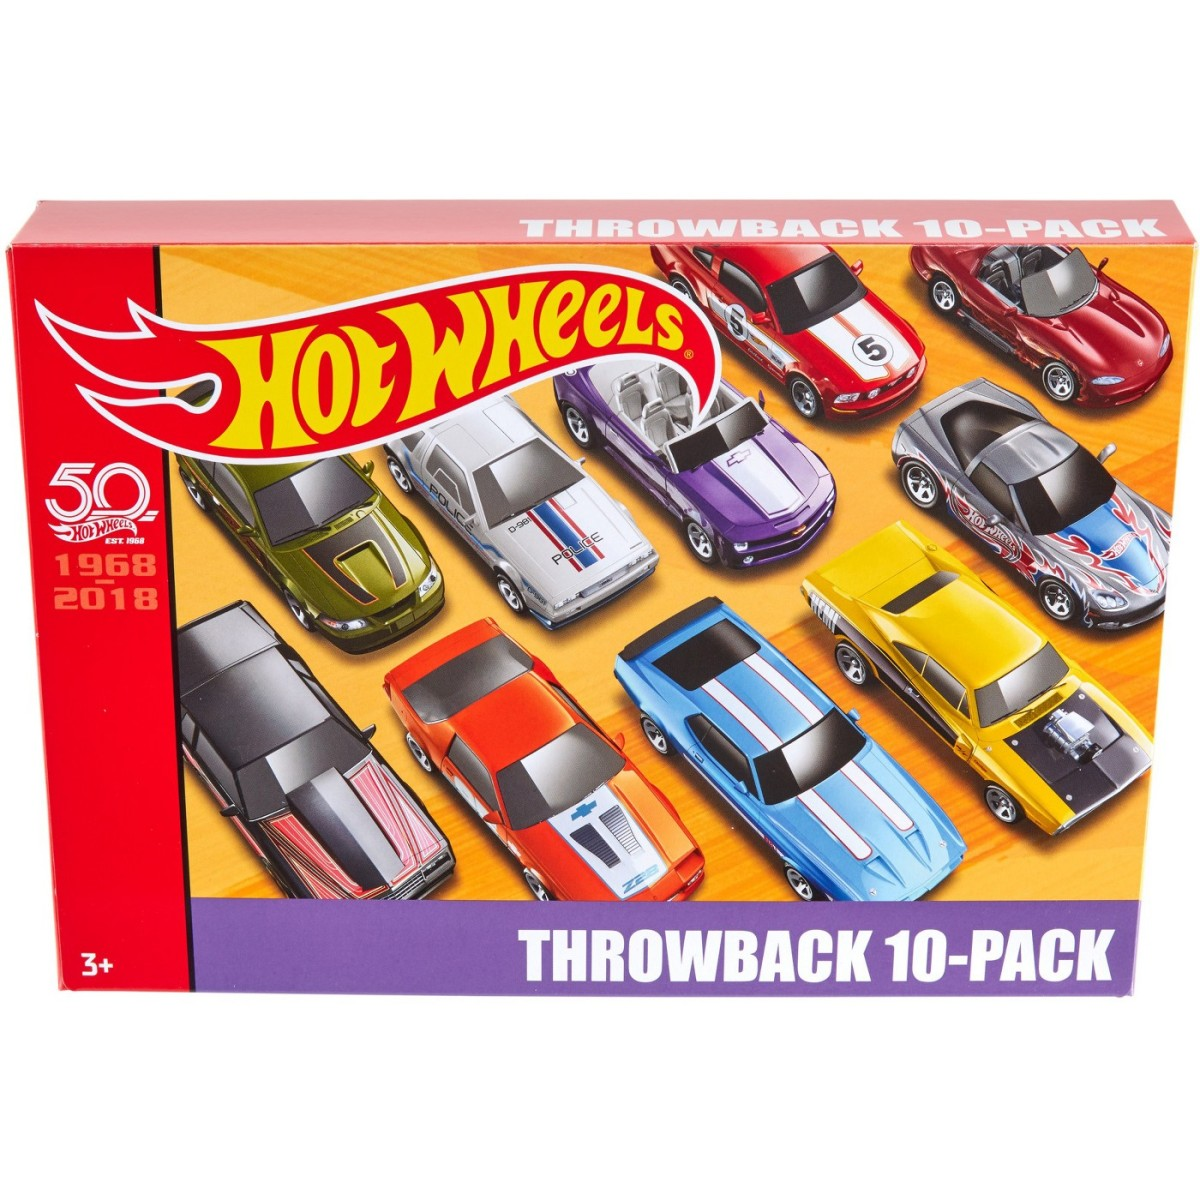 Hot Wheels Hw 50th Throwback 10 Pack Now Available On Target Com Orange Track Diecast